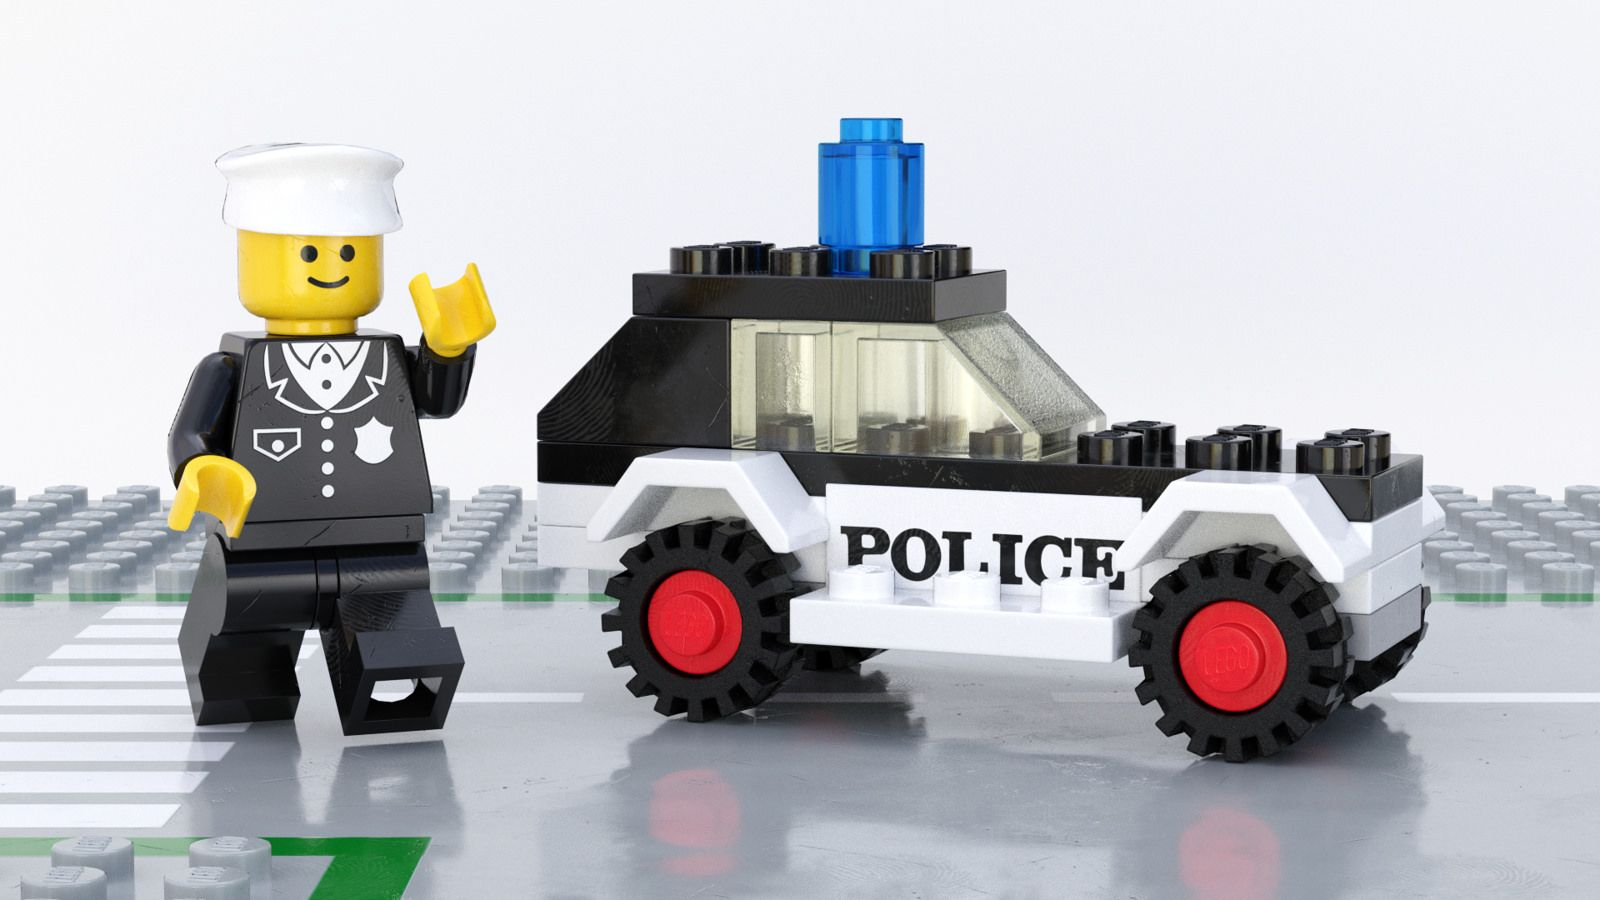 6600 Police Patrol, a Fun Render of Old Lego | Reid's For